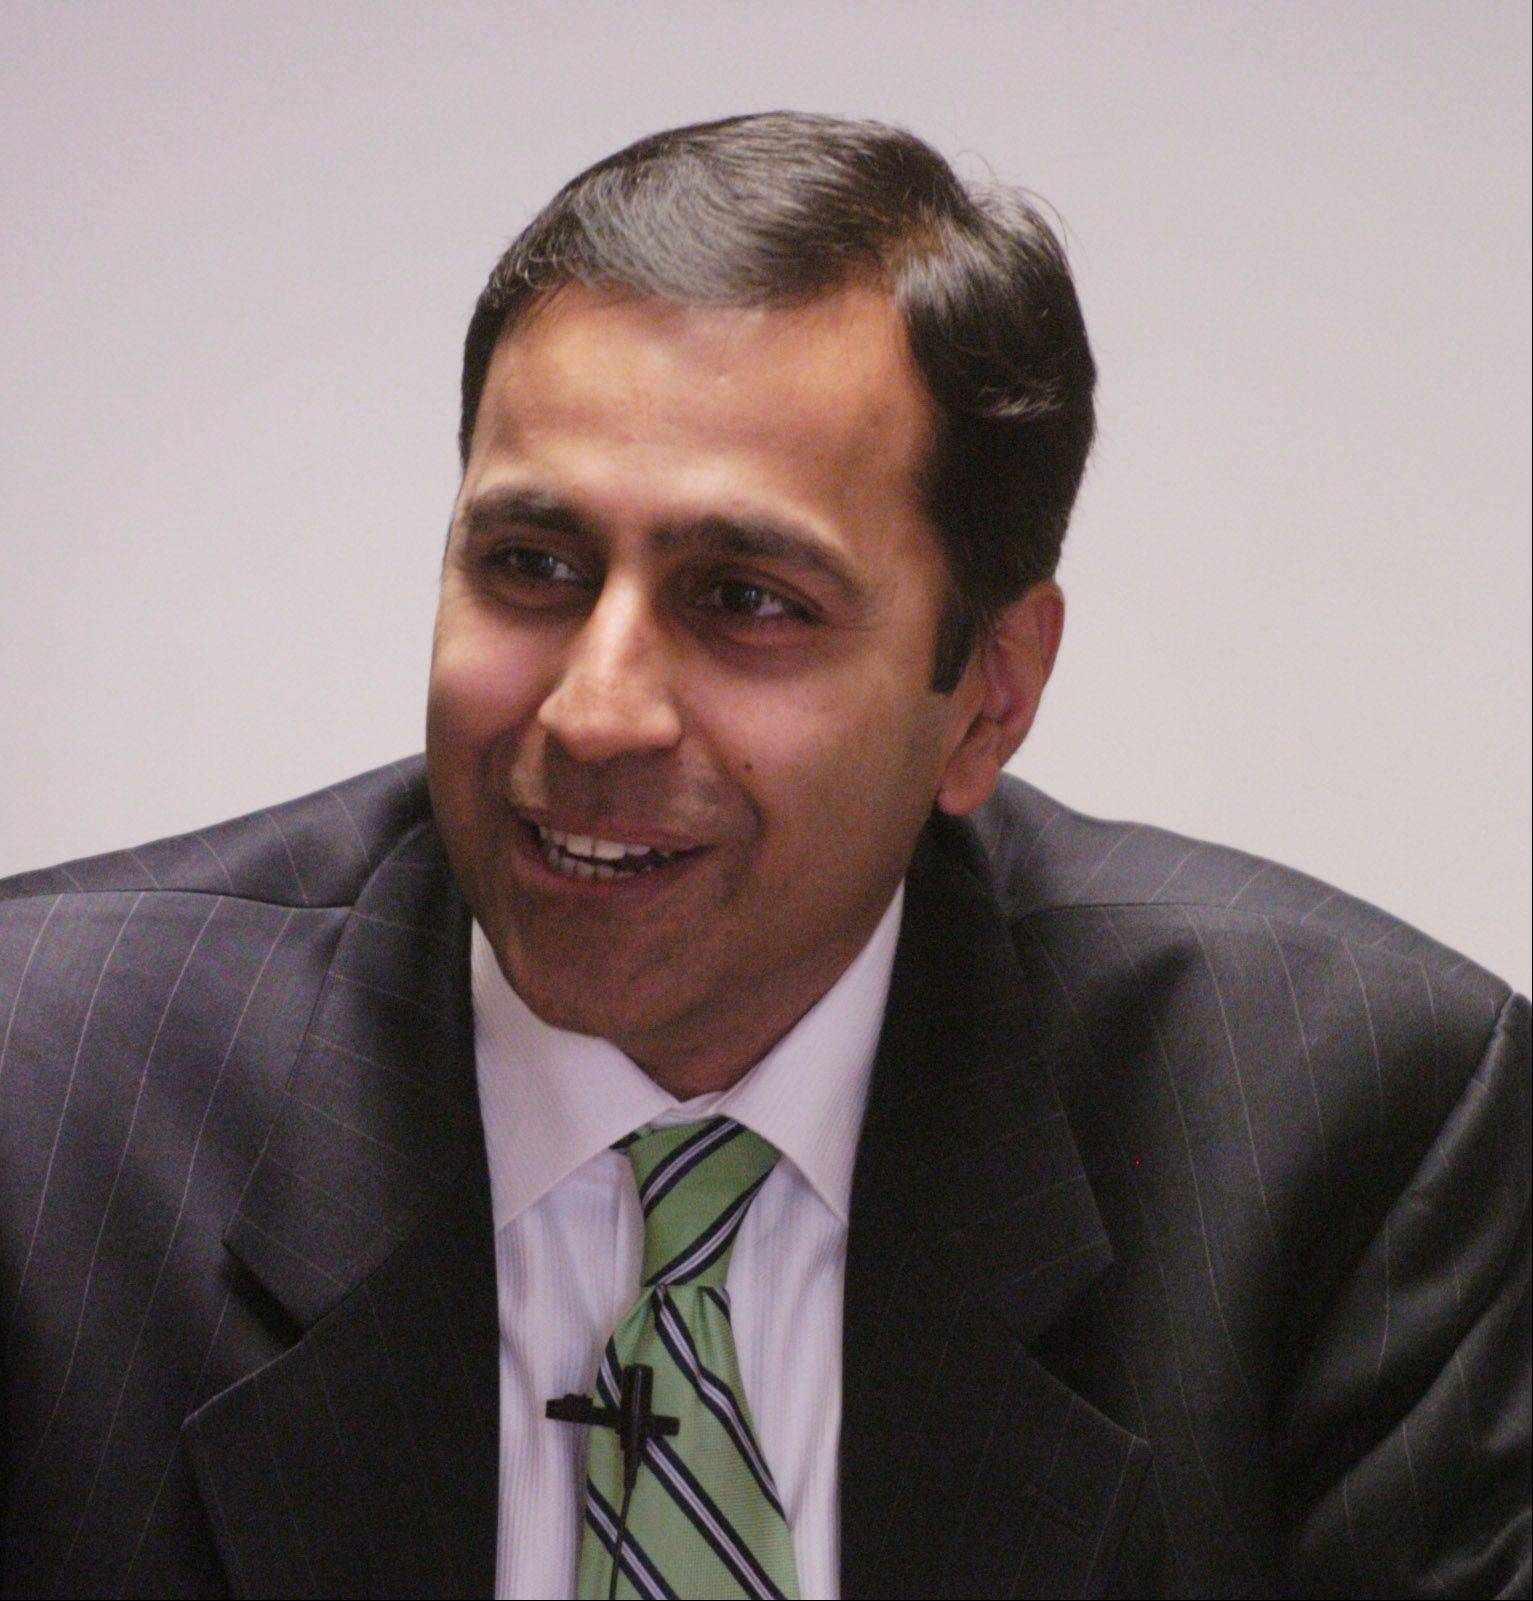 Eighth District Democratic primary candidate Raja Krishnamoorthi wants to take Tammy Duckworth's challenge to refuse PAC funding further.